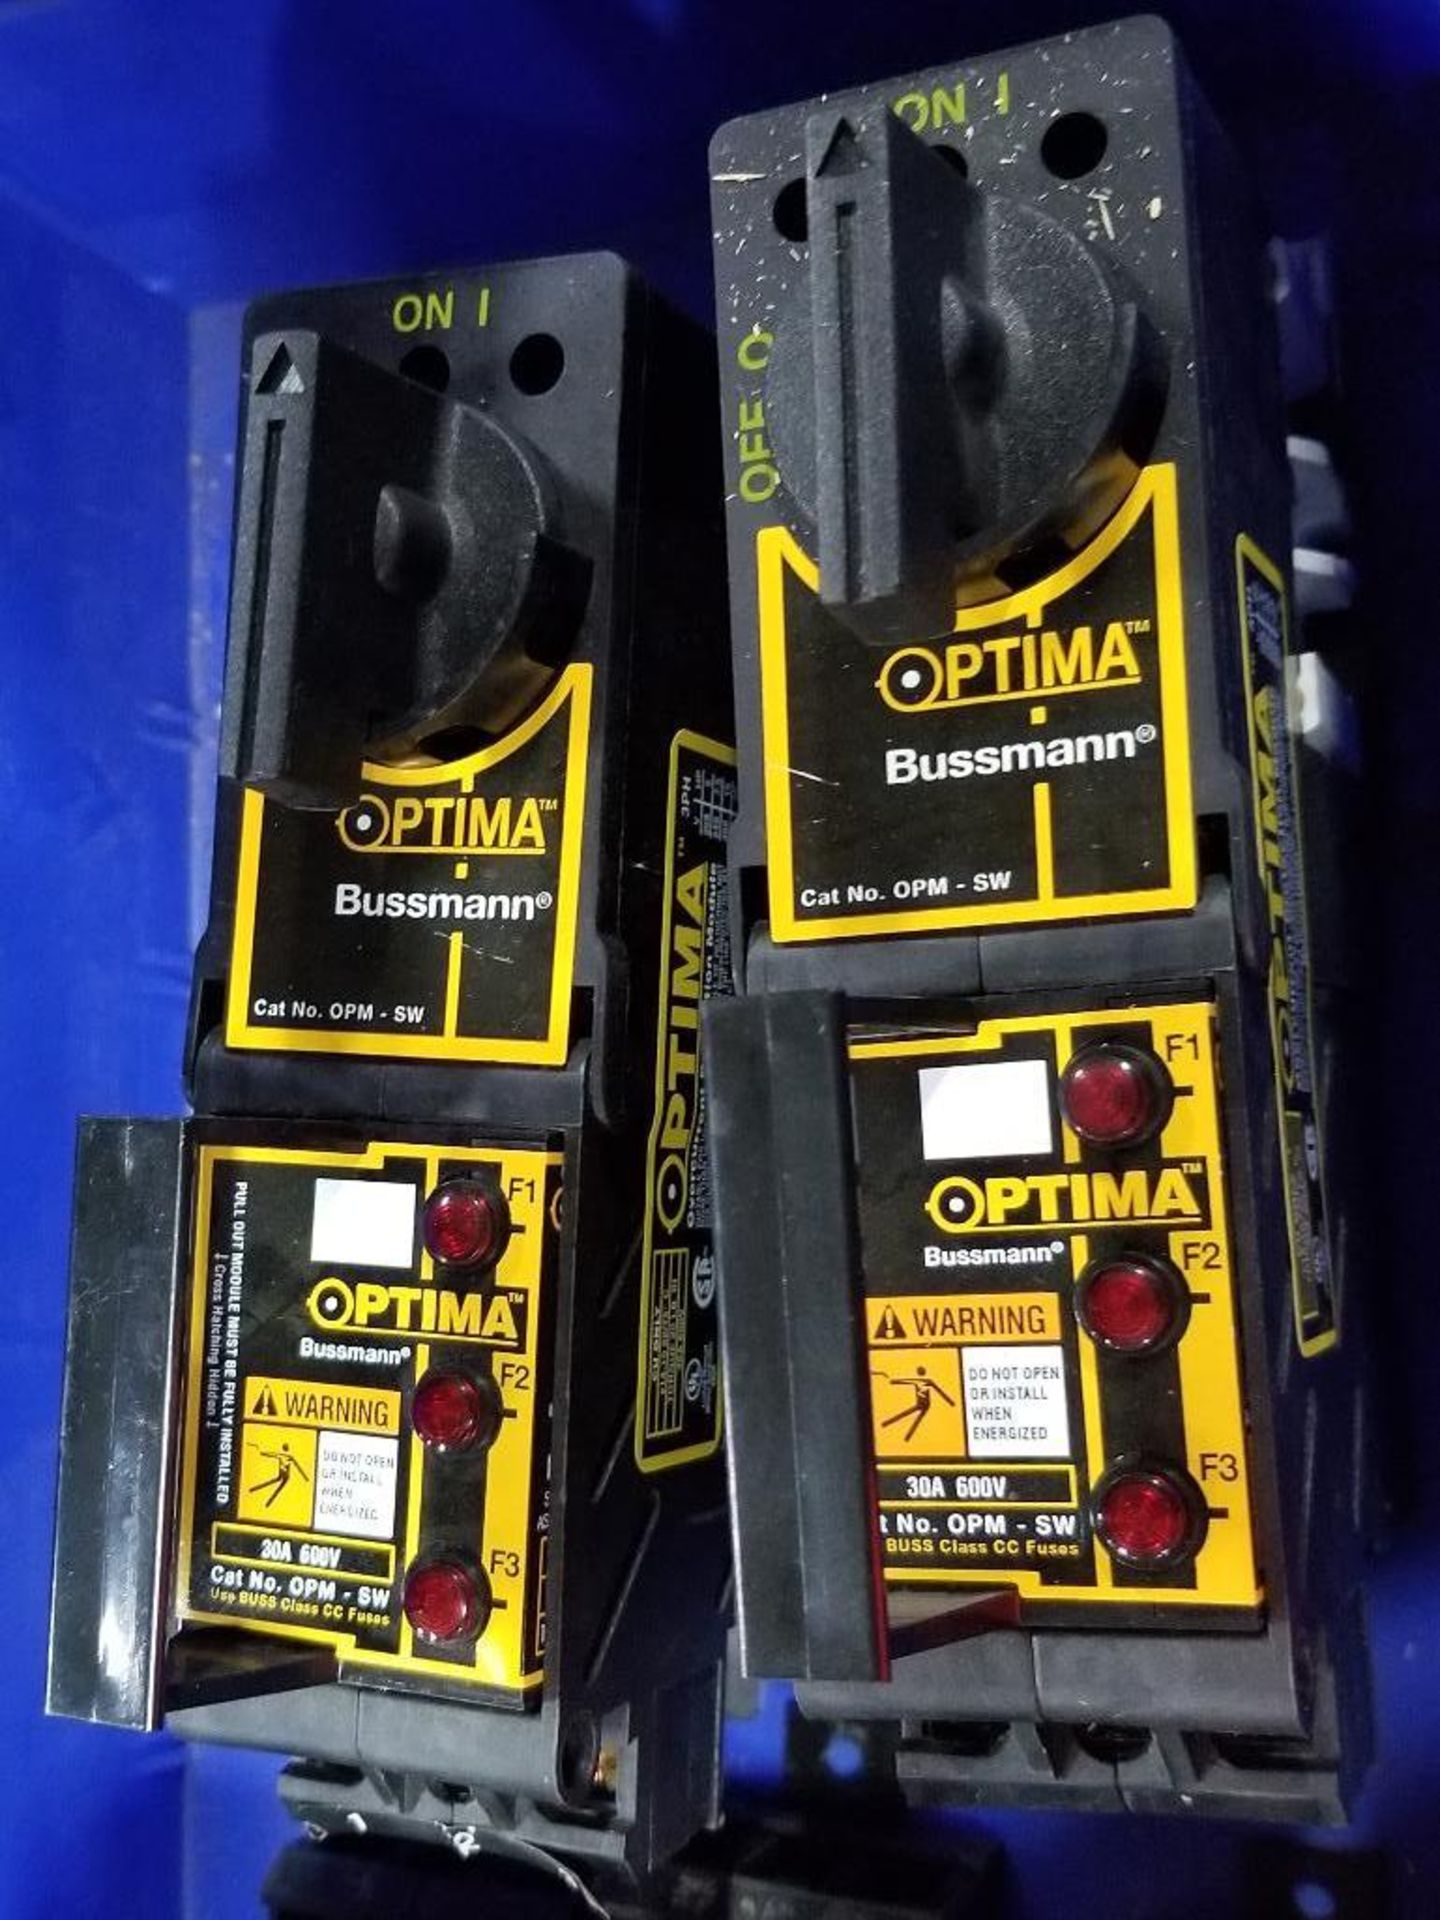 Assorted Bussmann Optima overcurrent protection module. - Image 4 of 7